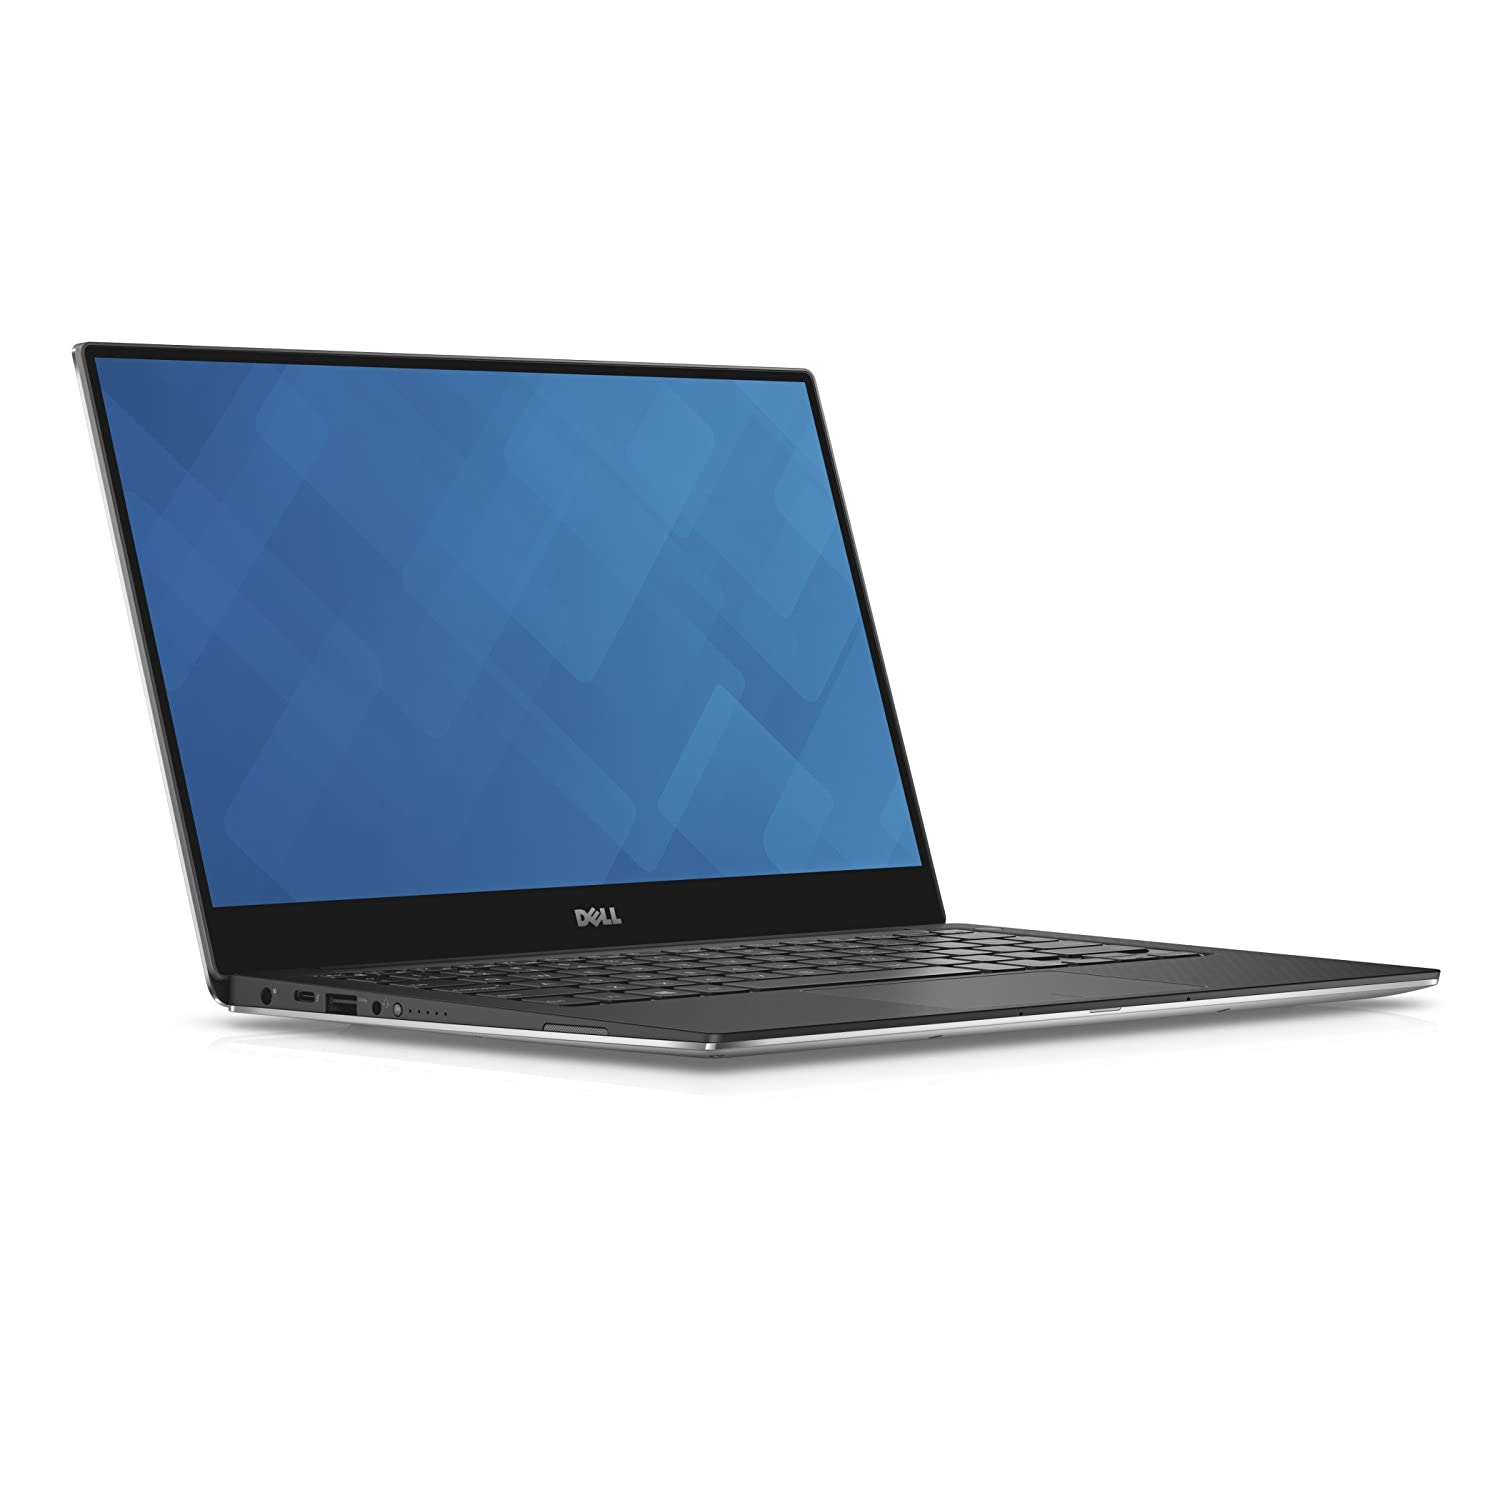 "Amazon.com: Dell 6TDJT XPS 13 Laptop, 13.3"" QHD with Touch, Intel Core  i7-7500U, 8GB LPDDR3, 256GB Solid State Drive, Windows 10 Pro: Computers &  ..."